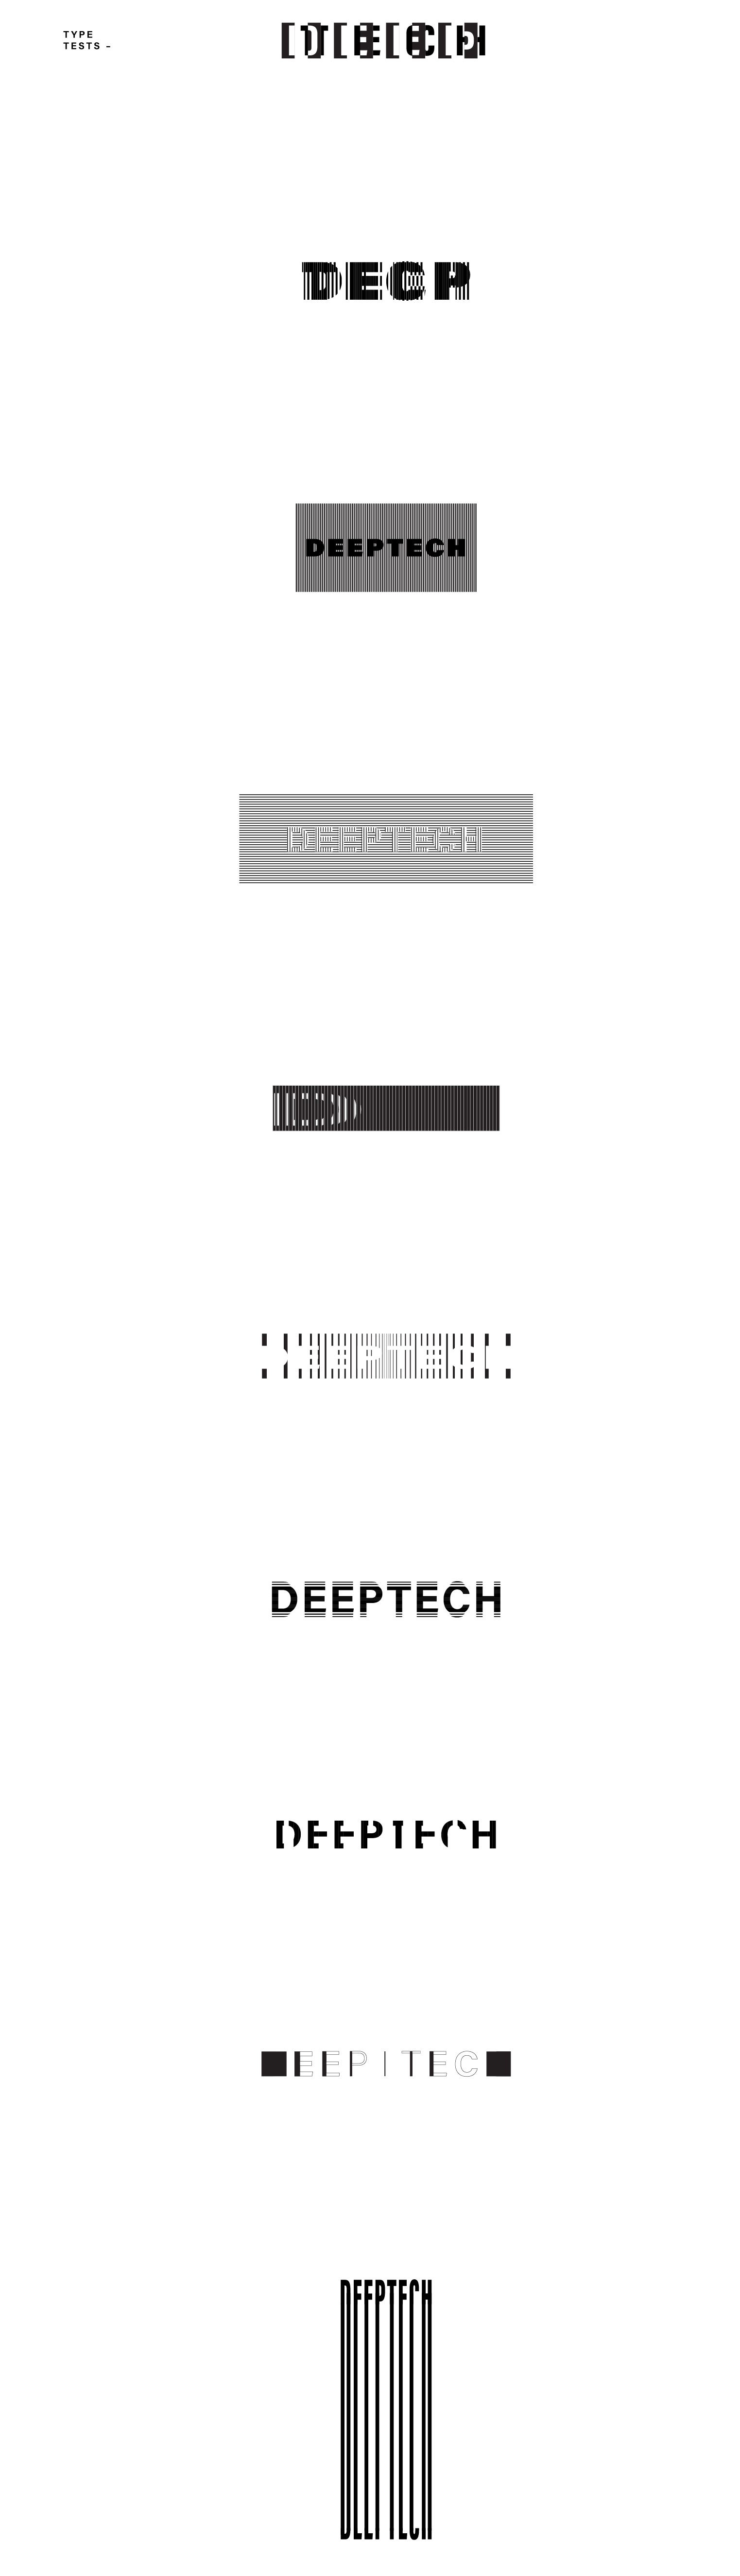 deeptech research doc 2_type experiments.png